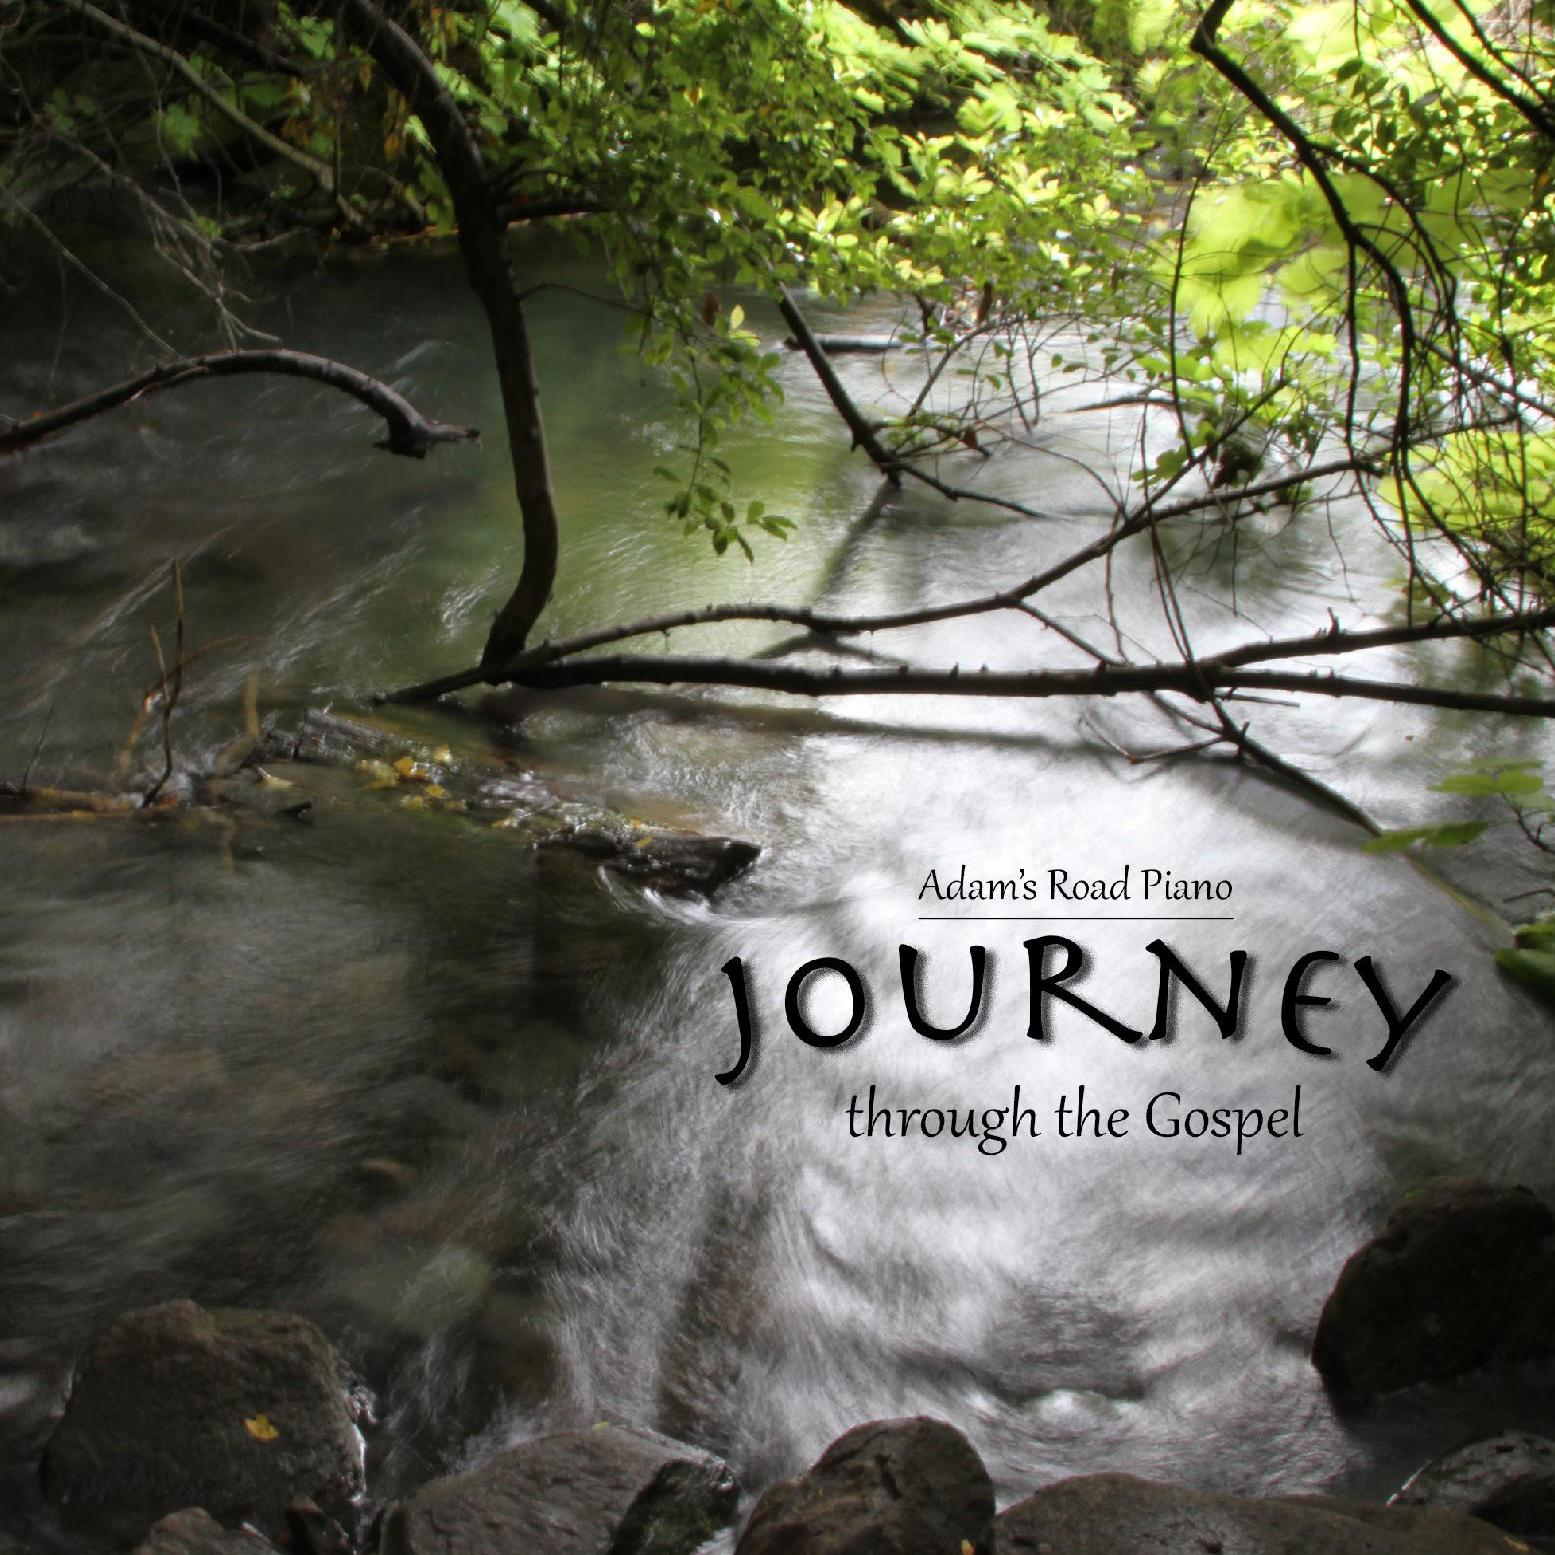 Journey Through the Gospel (Spoken Word)